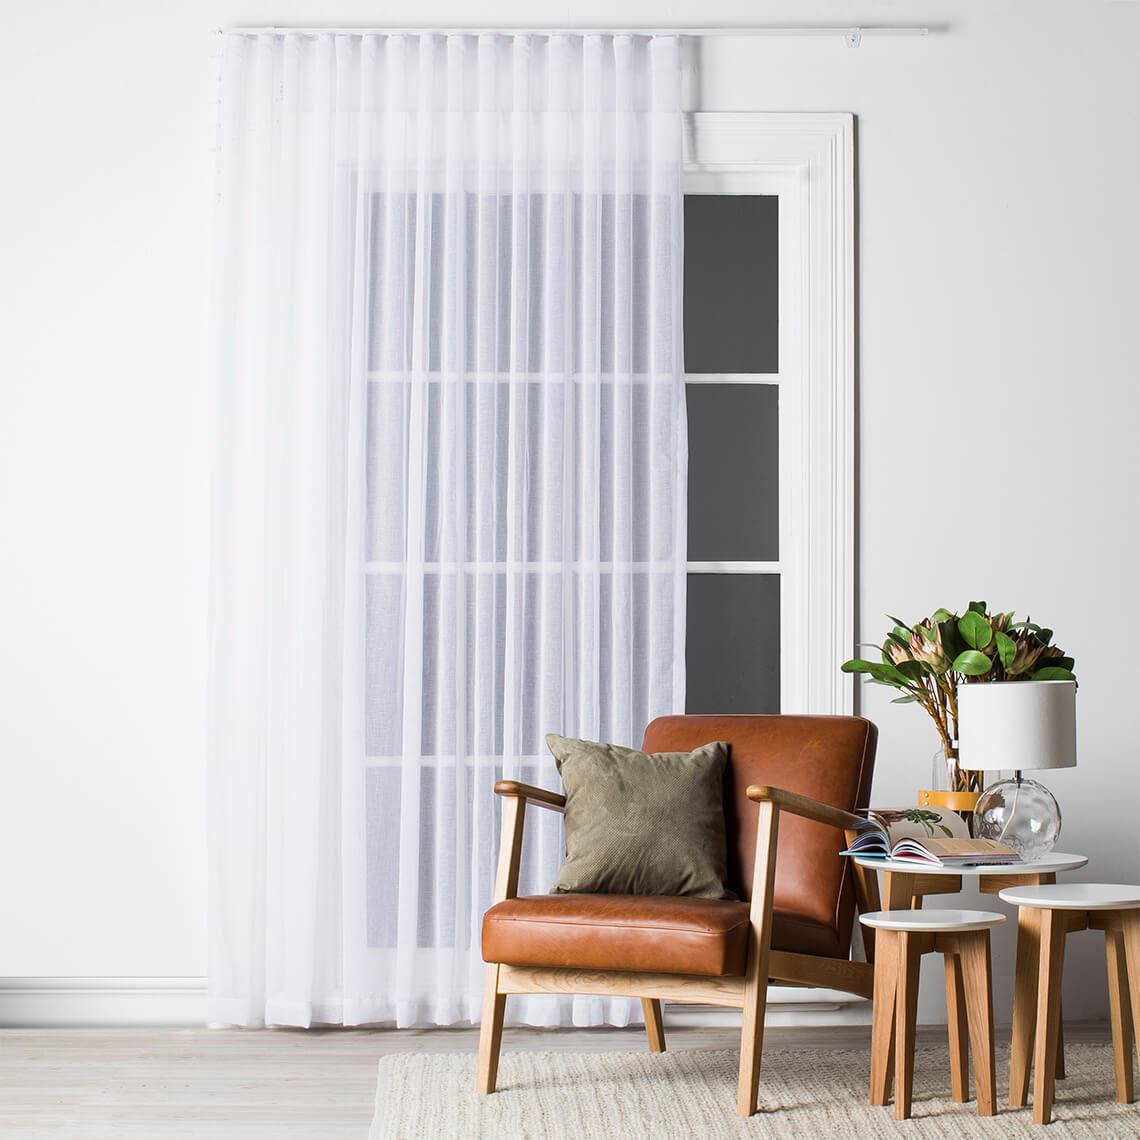 Mineral Sheer S Fold Curtain Size W 325cm x D 0cm x H 280cm in White 100% Polyester Freedom by Freedom, a Curtains for sale on Style Sourcebook